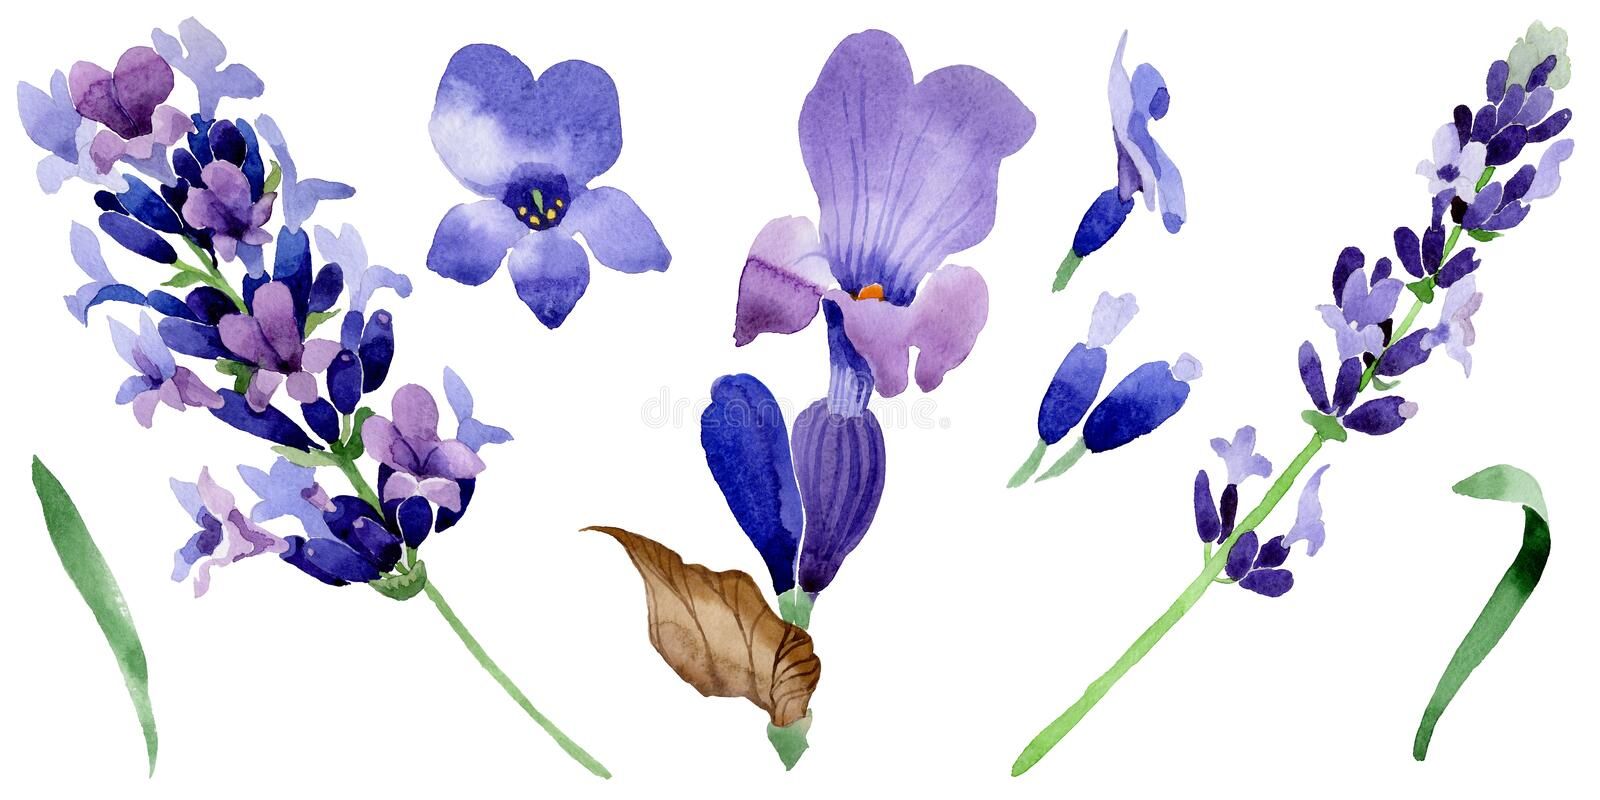 Wildflower lavender flower in a watercolor style isolated. stock illustration